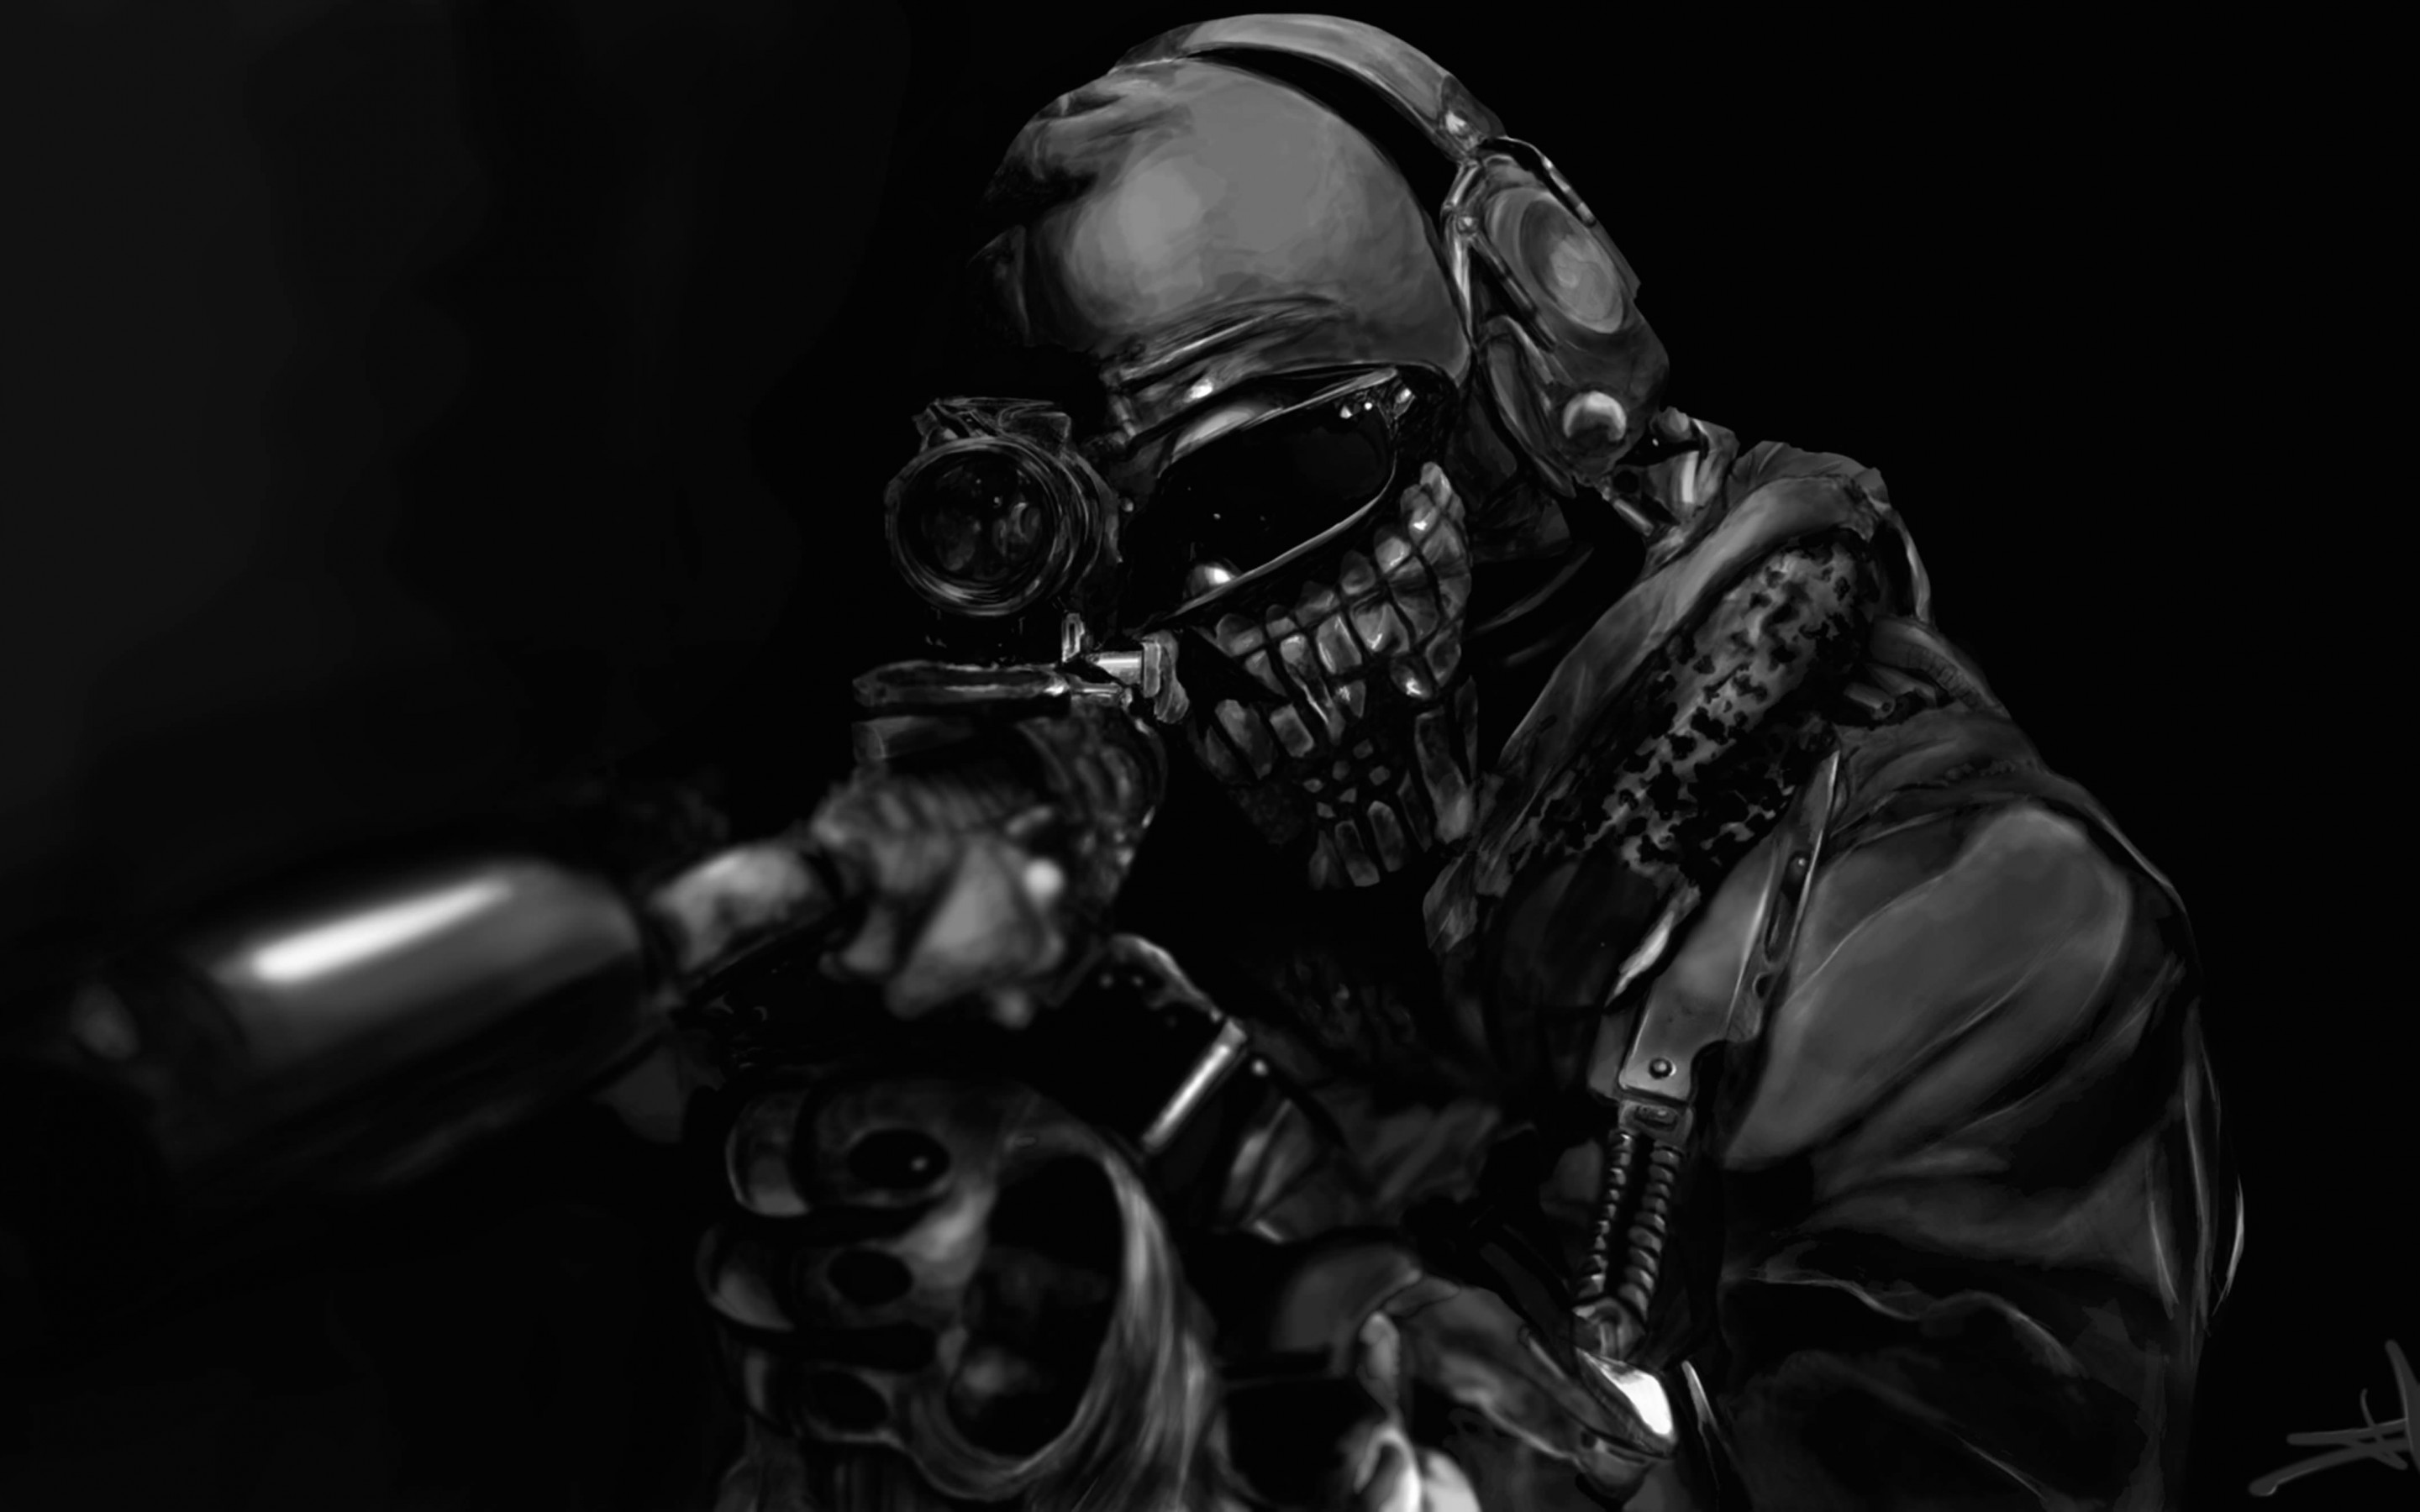 Call of Duty Ghost Masked Warrior Wallpaper for Desktop 2880x1800